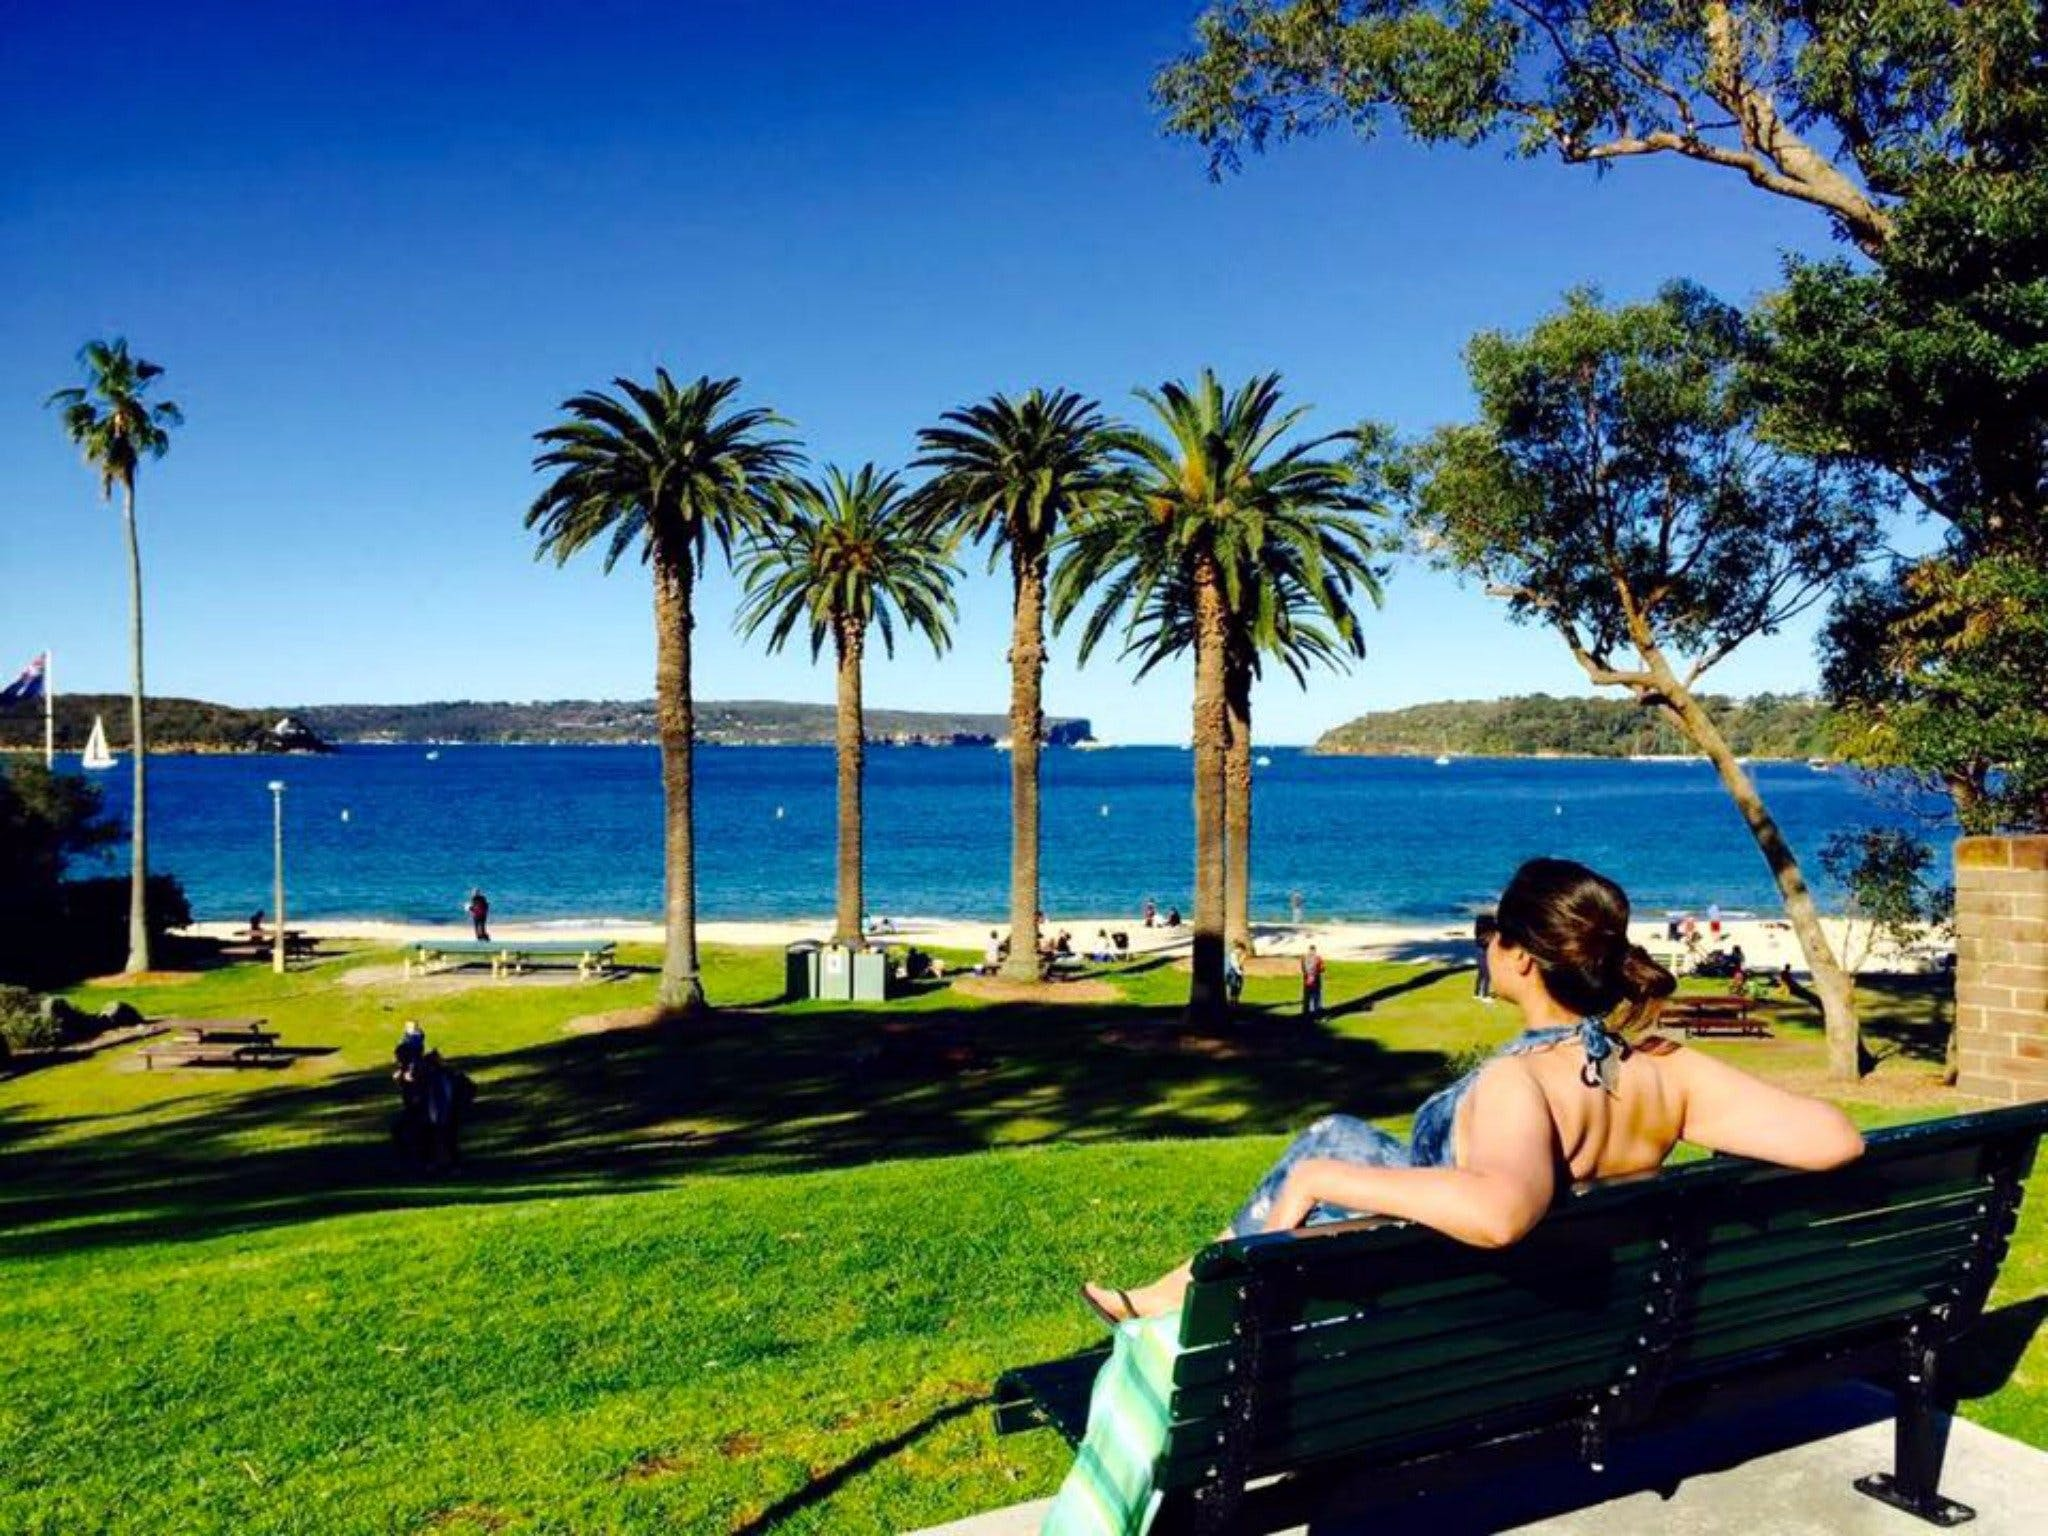 Balmoral Beach - Find Attractions